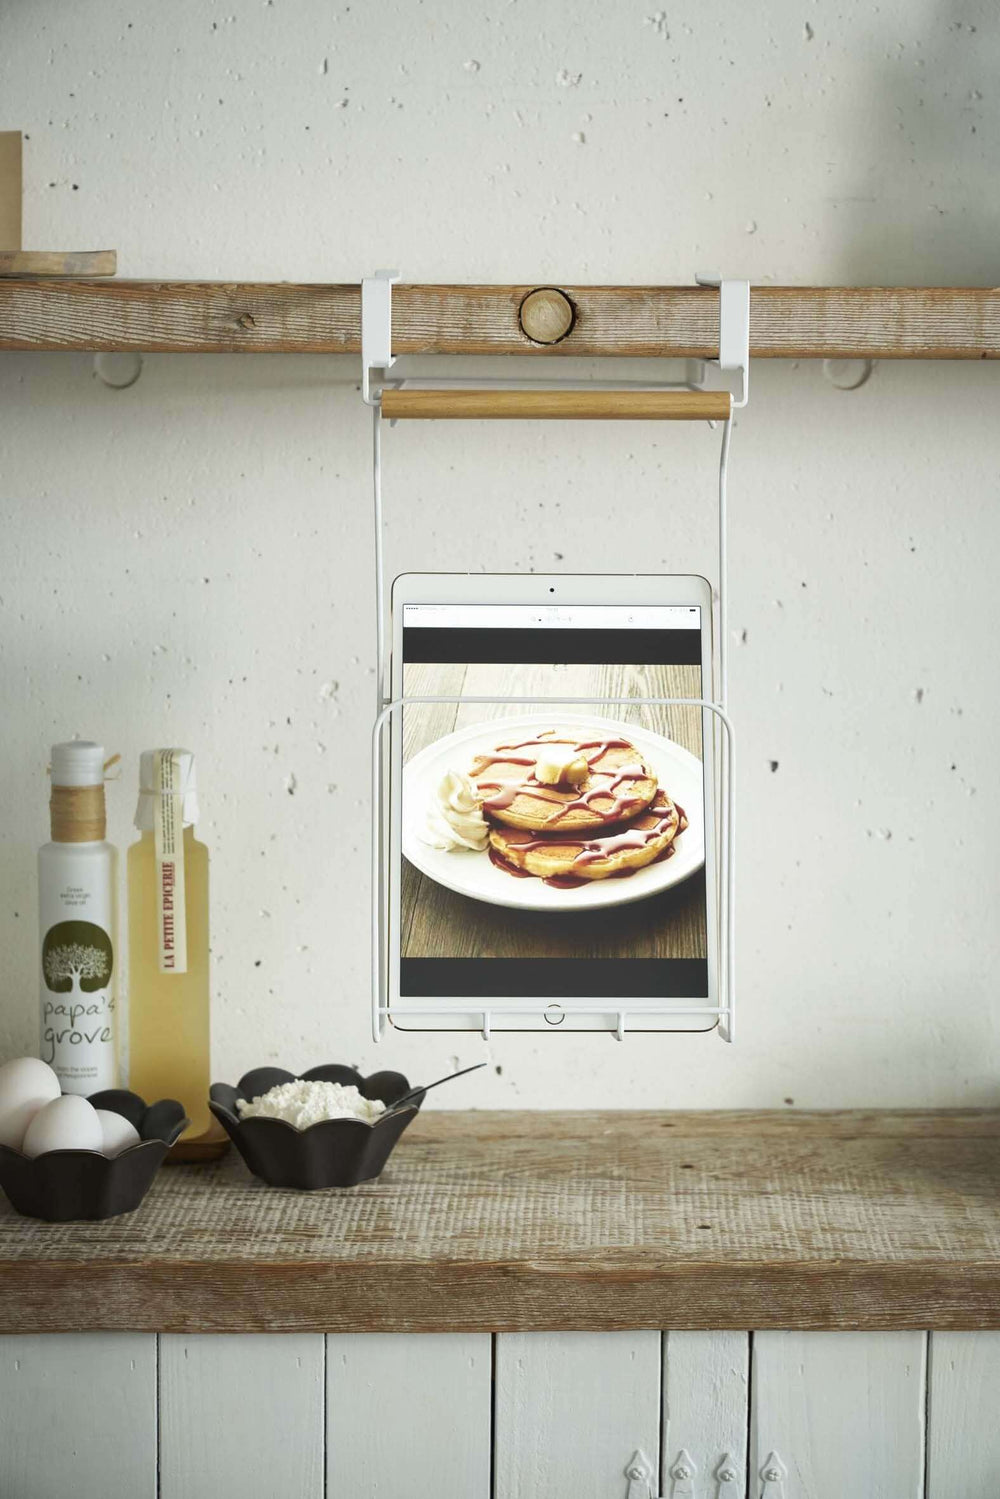 Yamazaki Under-Shelf Tablet and Cookbook Holder attached to a floating shelf above a kitchen counter, holding a tablet that is displaying a recipe image